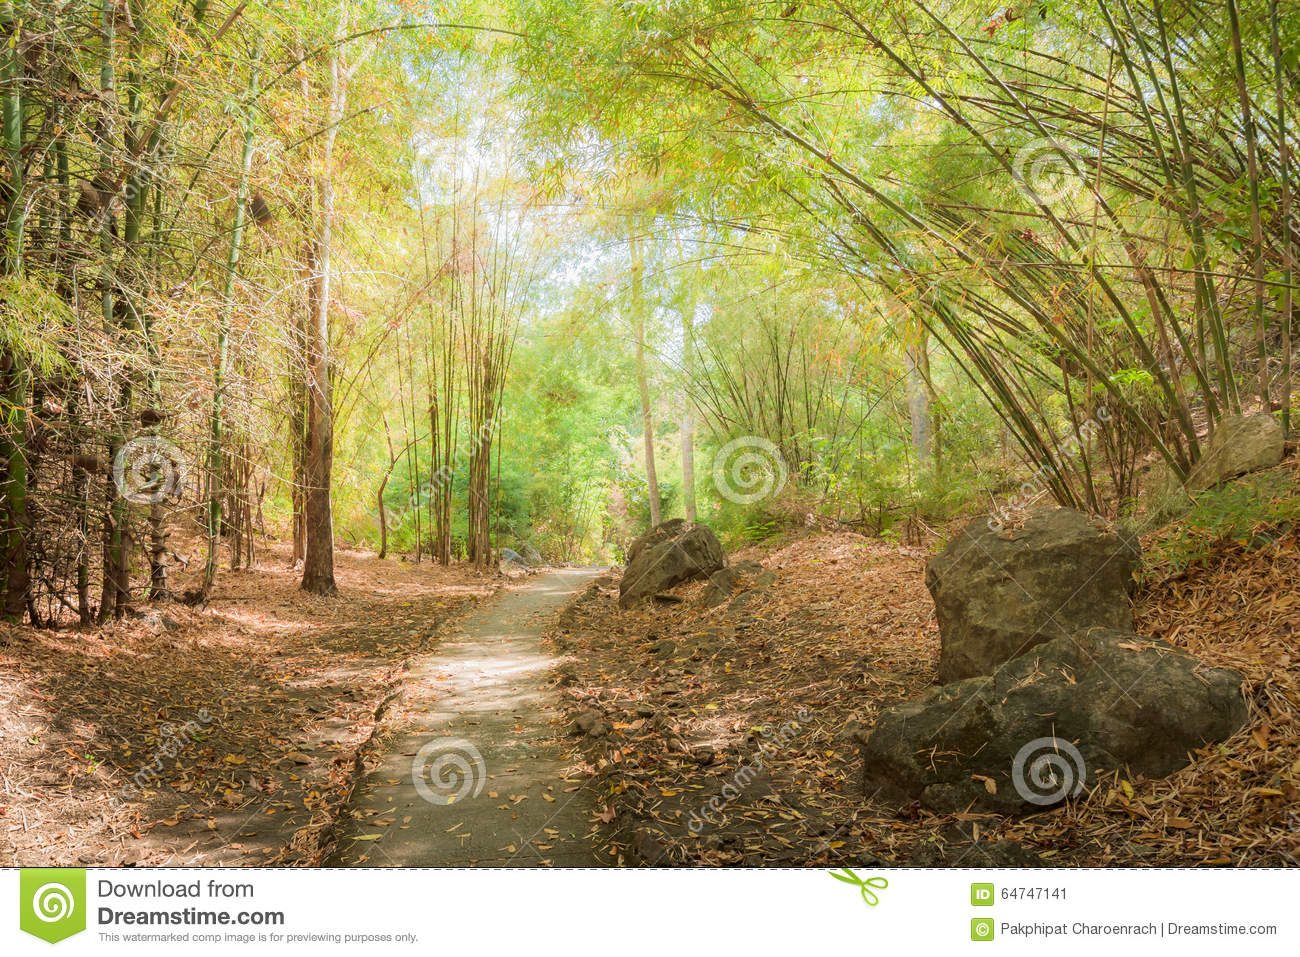 The way through the bamboo forest in autumn season. - (In the wi